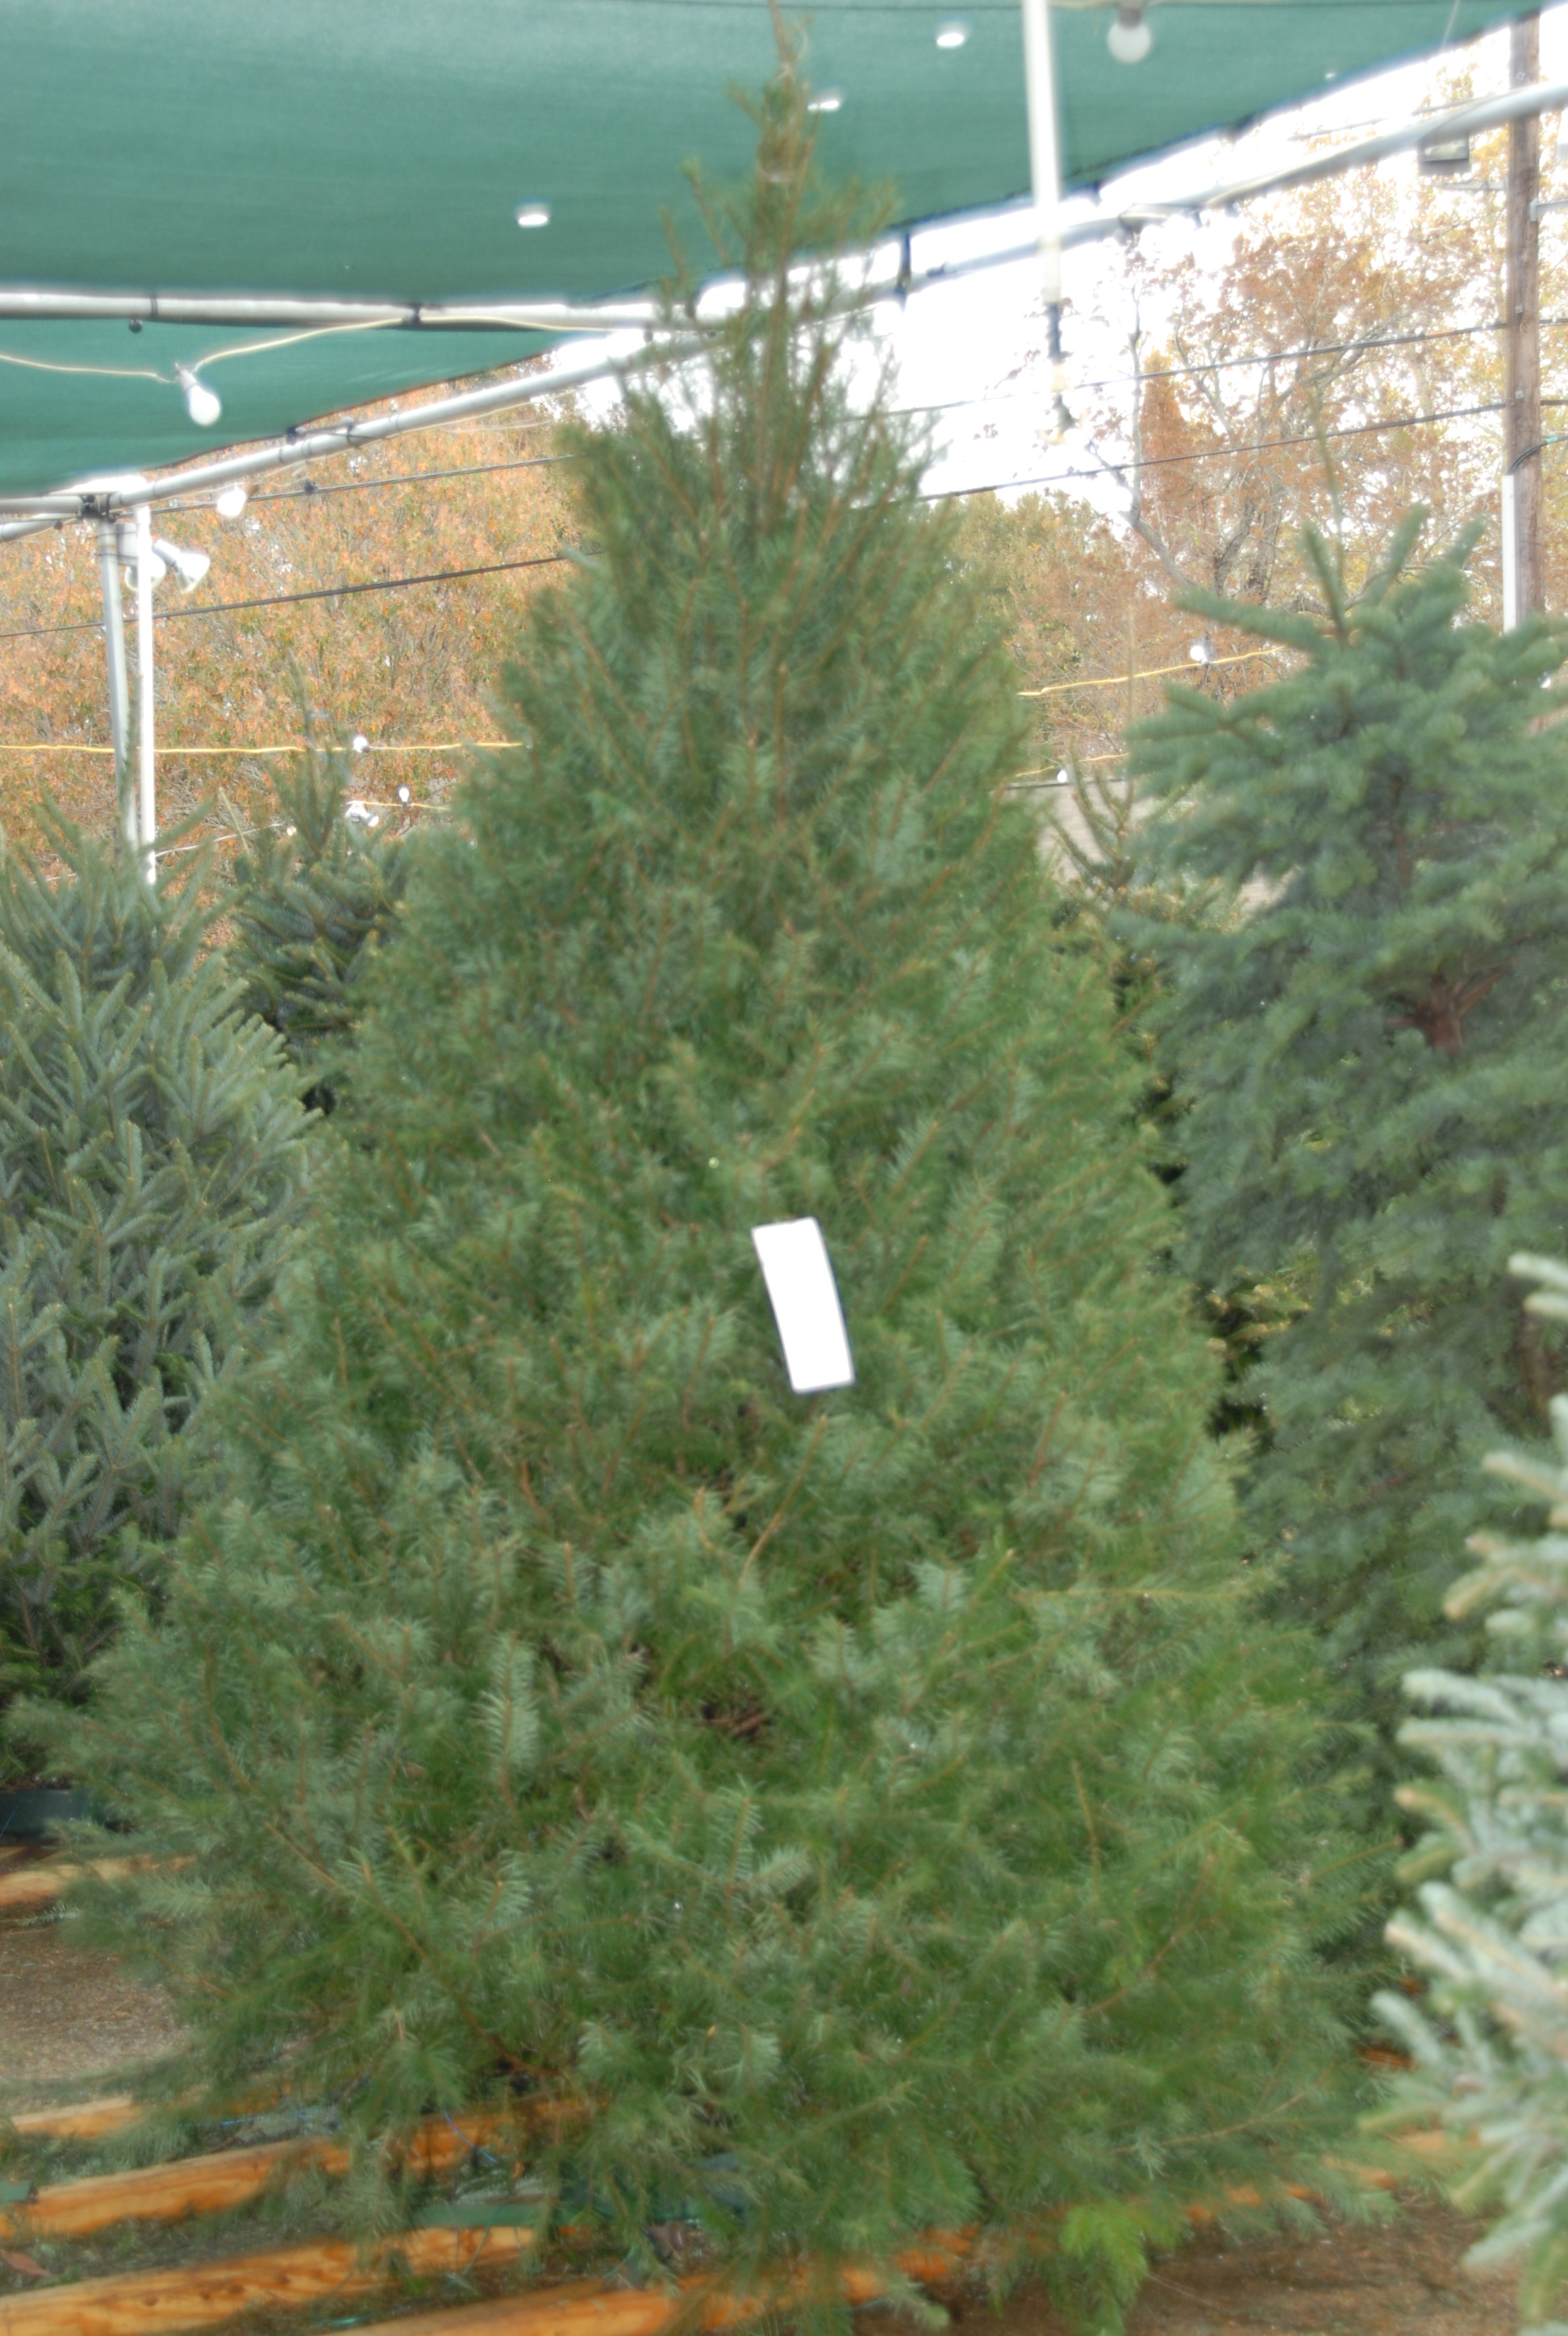 LSU AgCenter offers tips for selection, care of Christmas trees